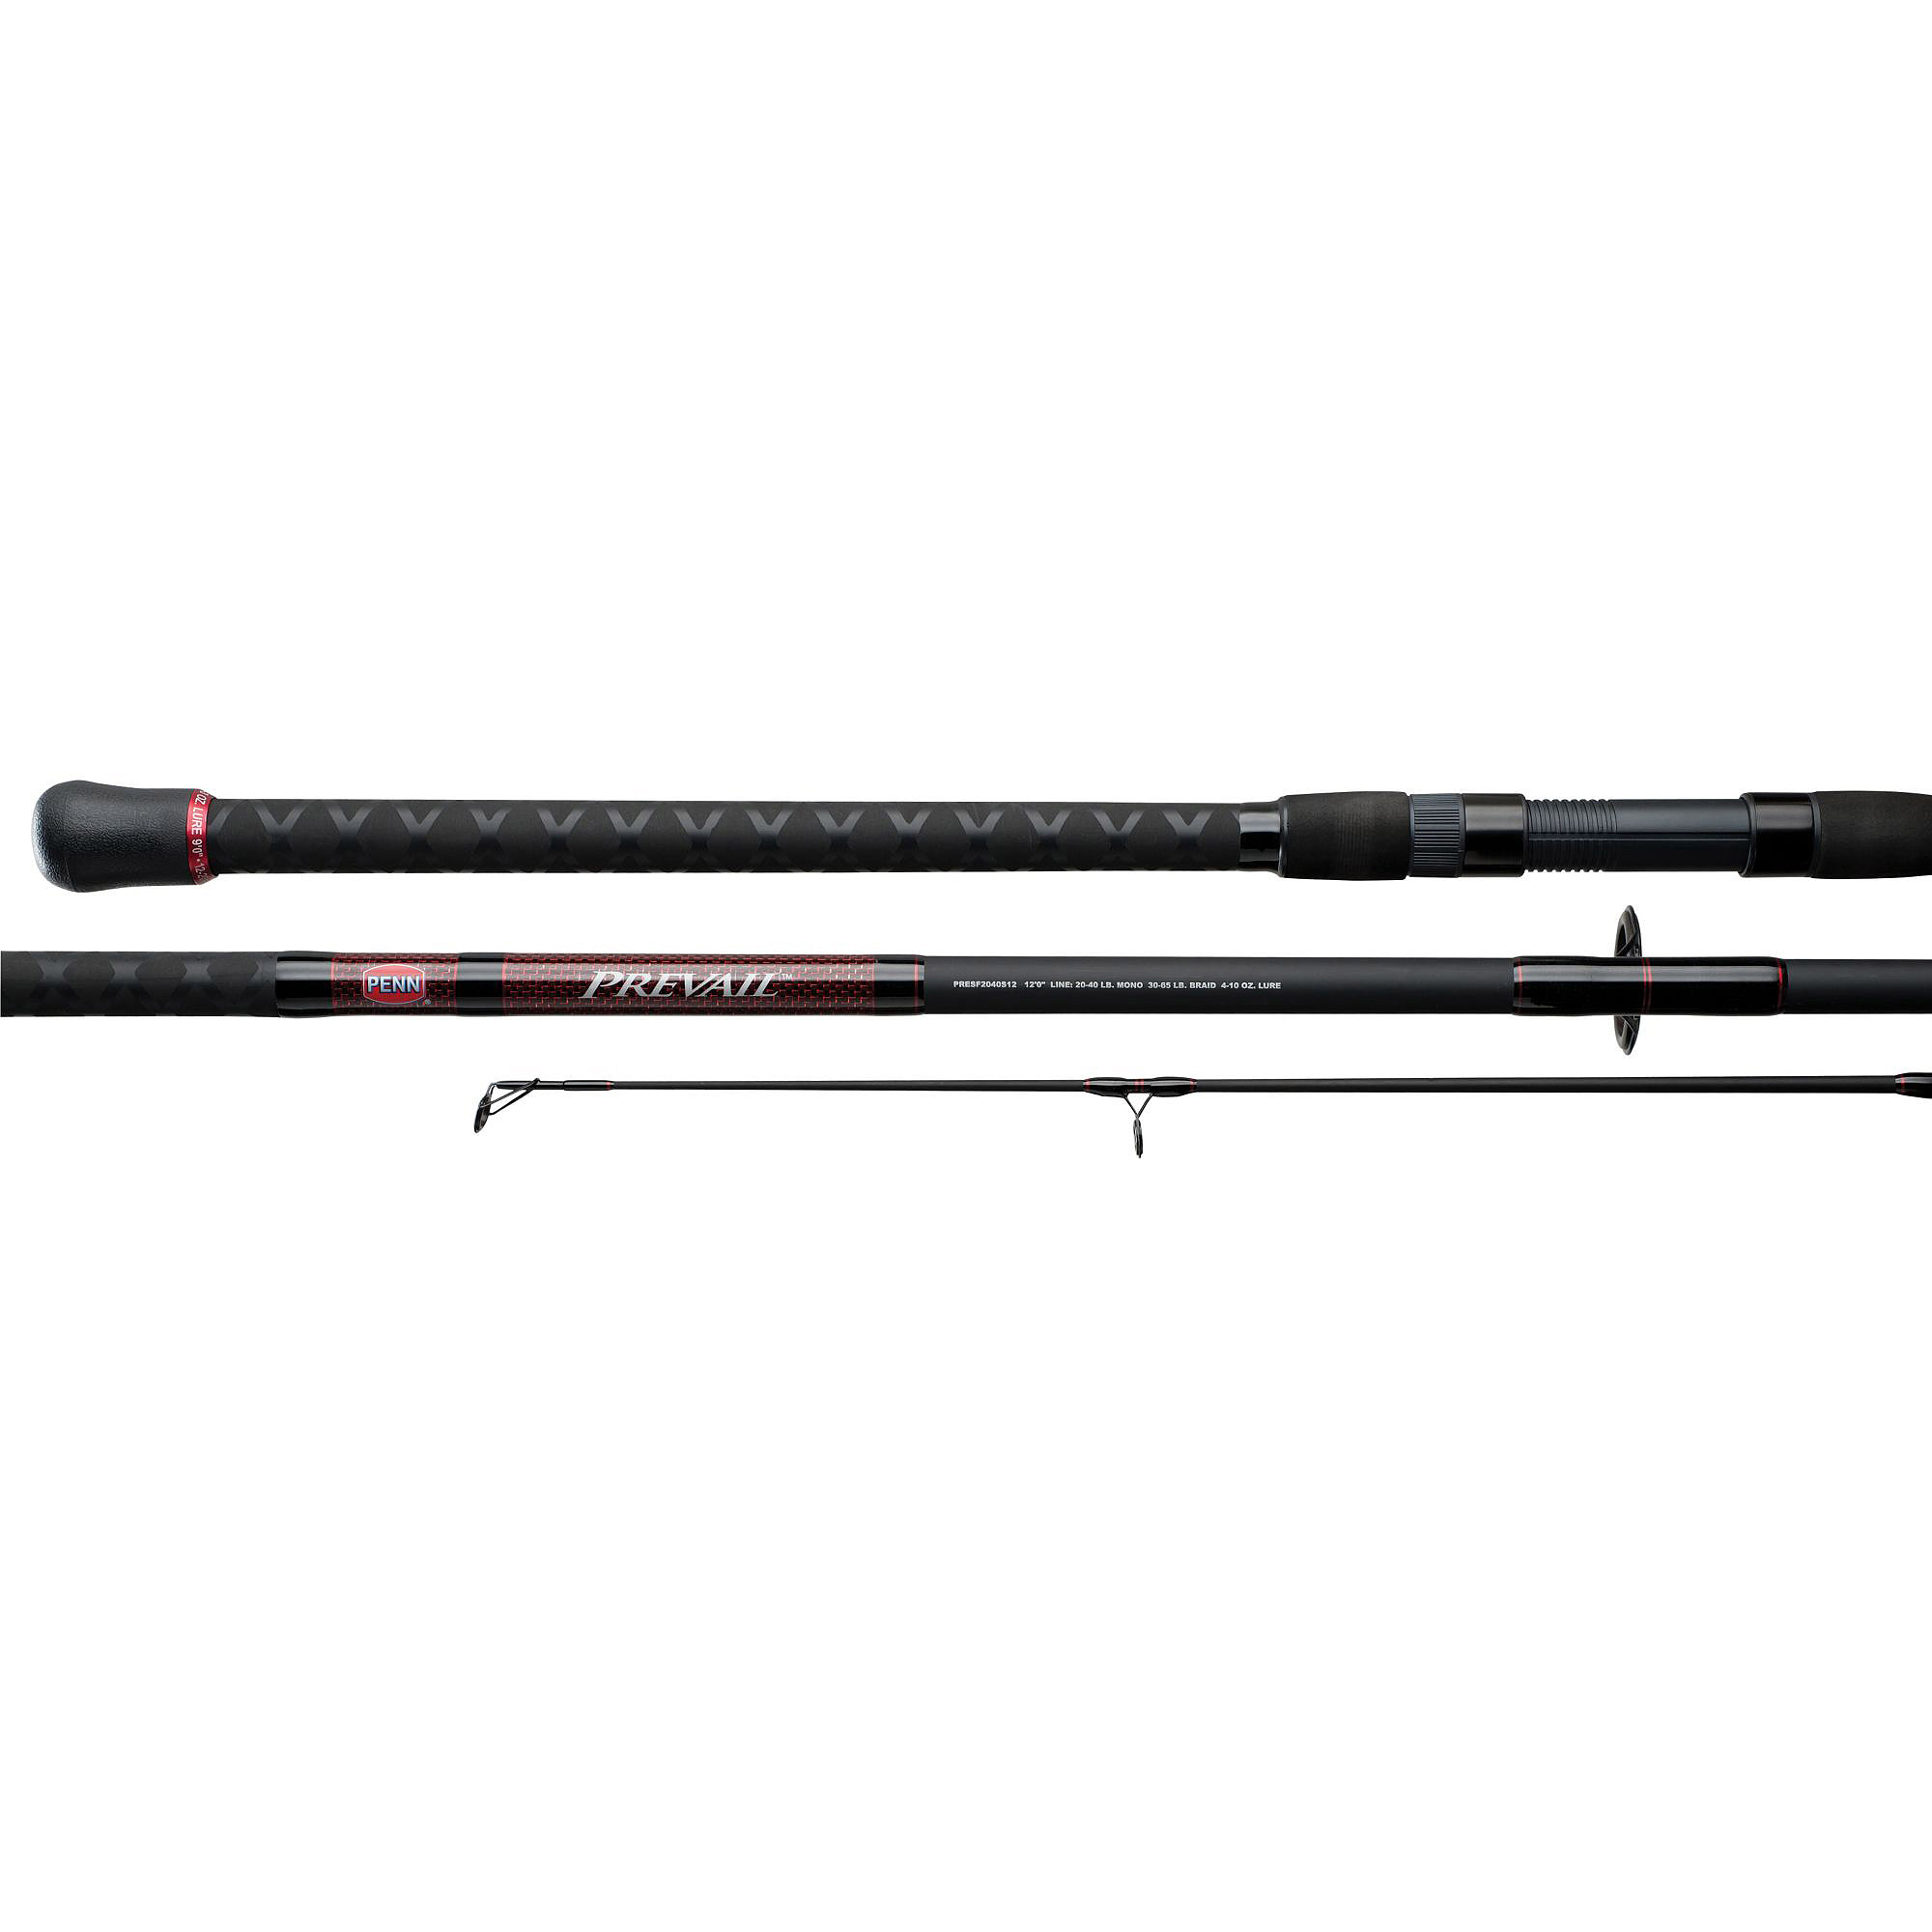 Medium Heavy Penn Prevail Surf Spinning Fishing Rod 10/' 2pcs